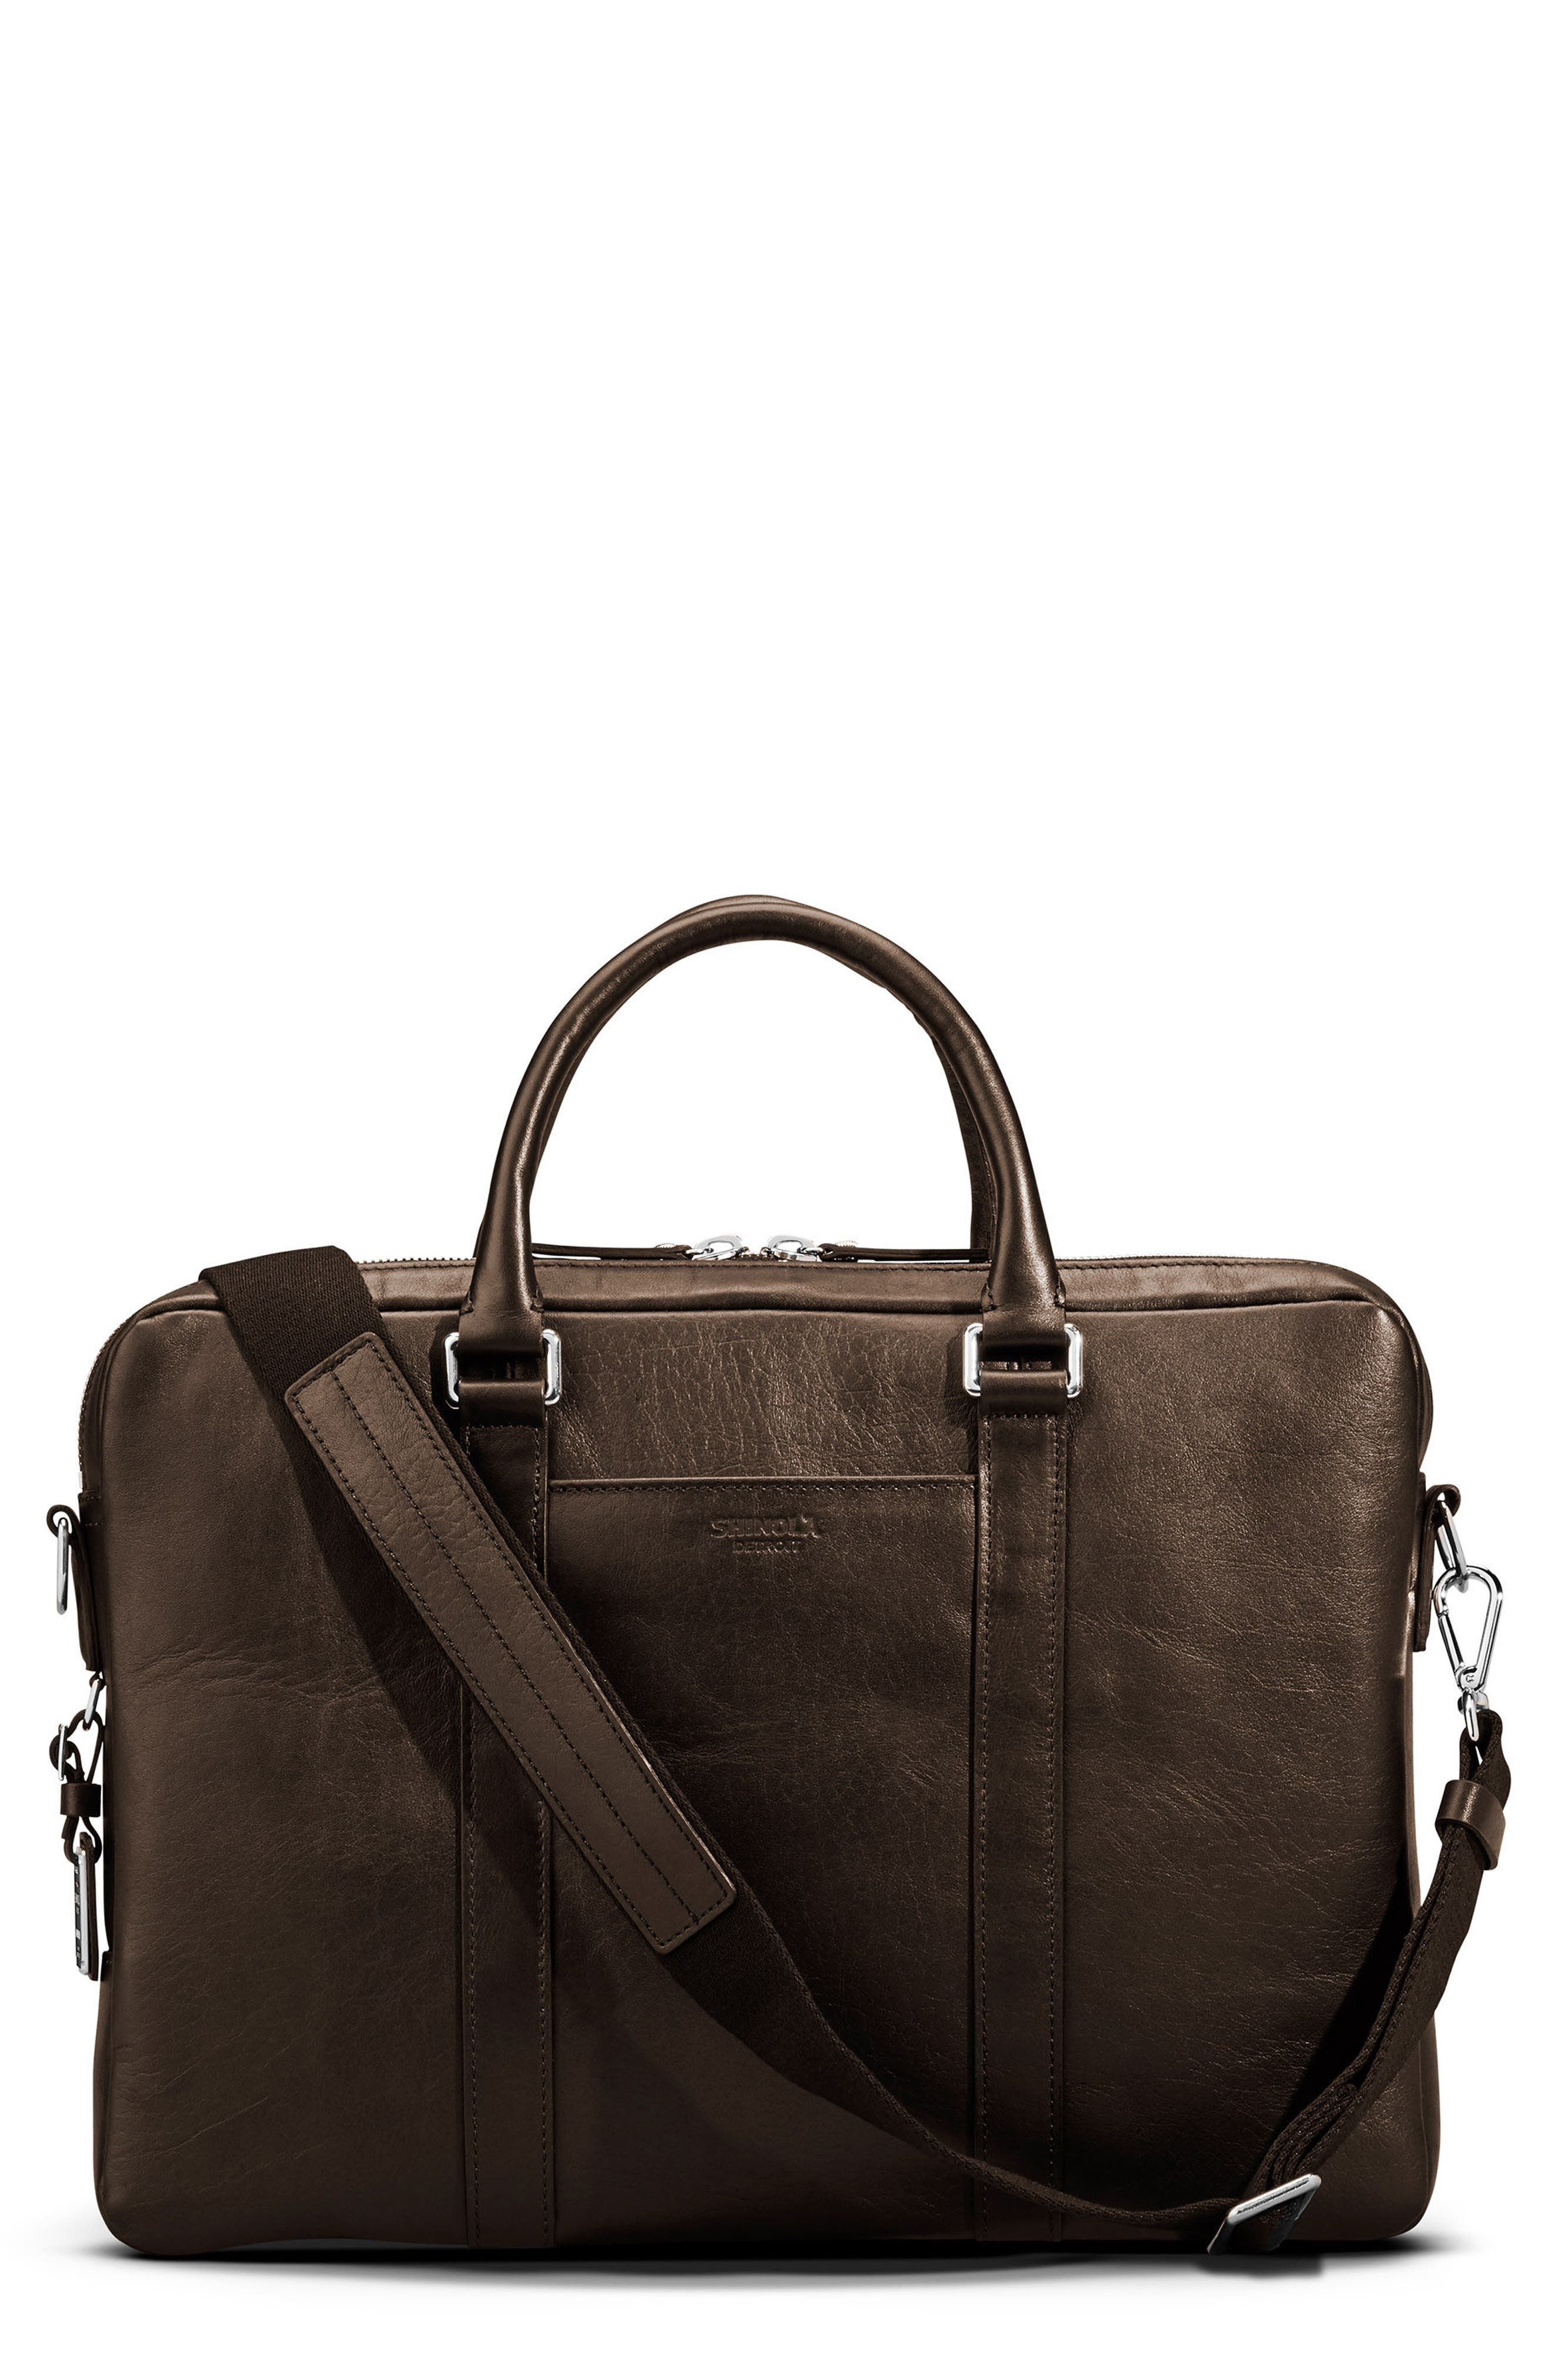 SHINOLA, Signature Leather Computer Briefcase, Main thumbnail 1, color, DEEP BROWN